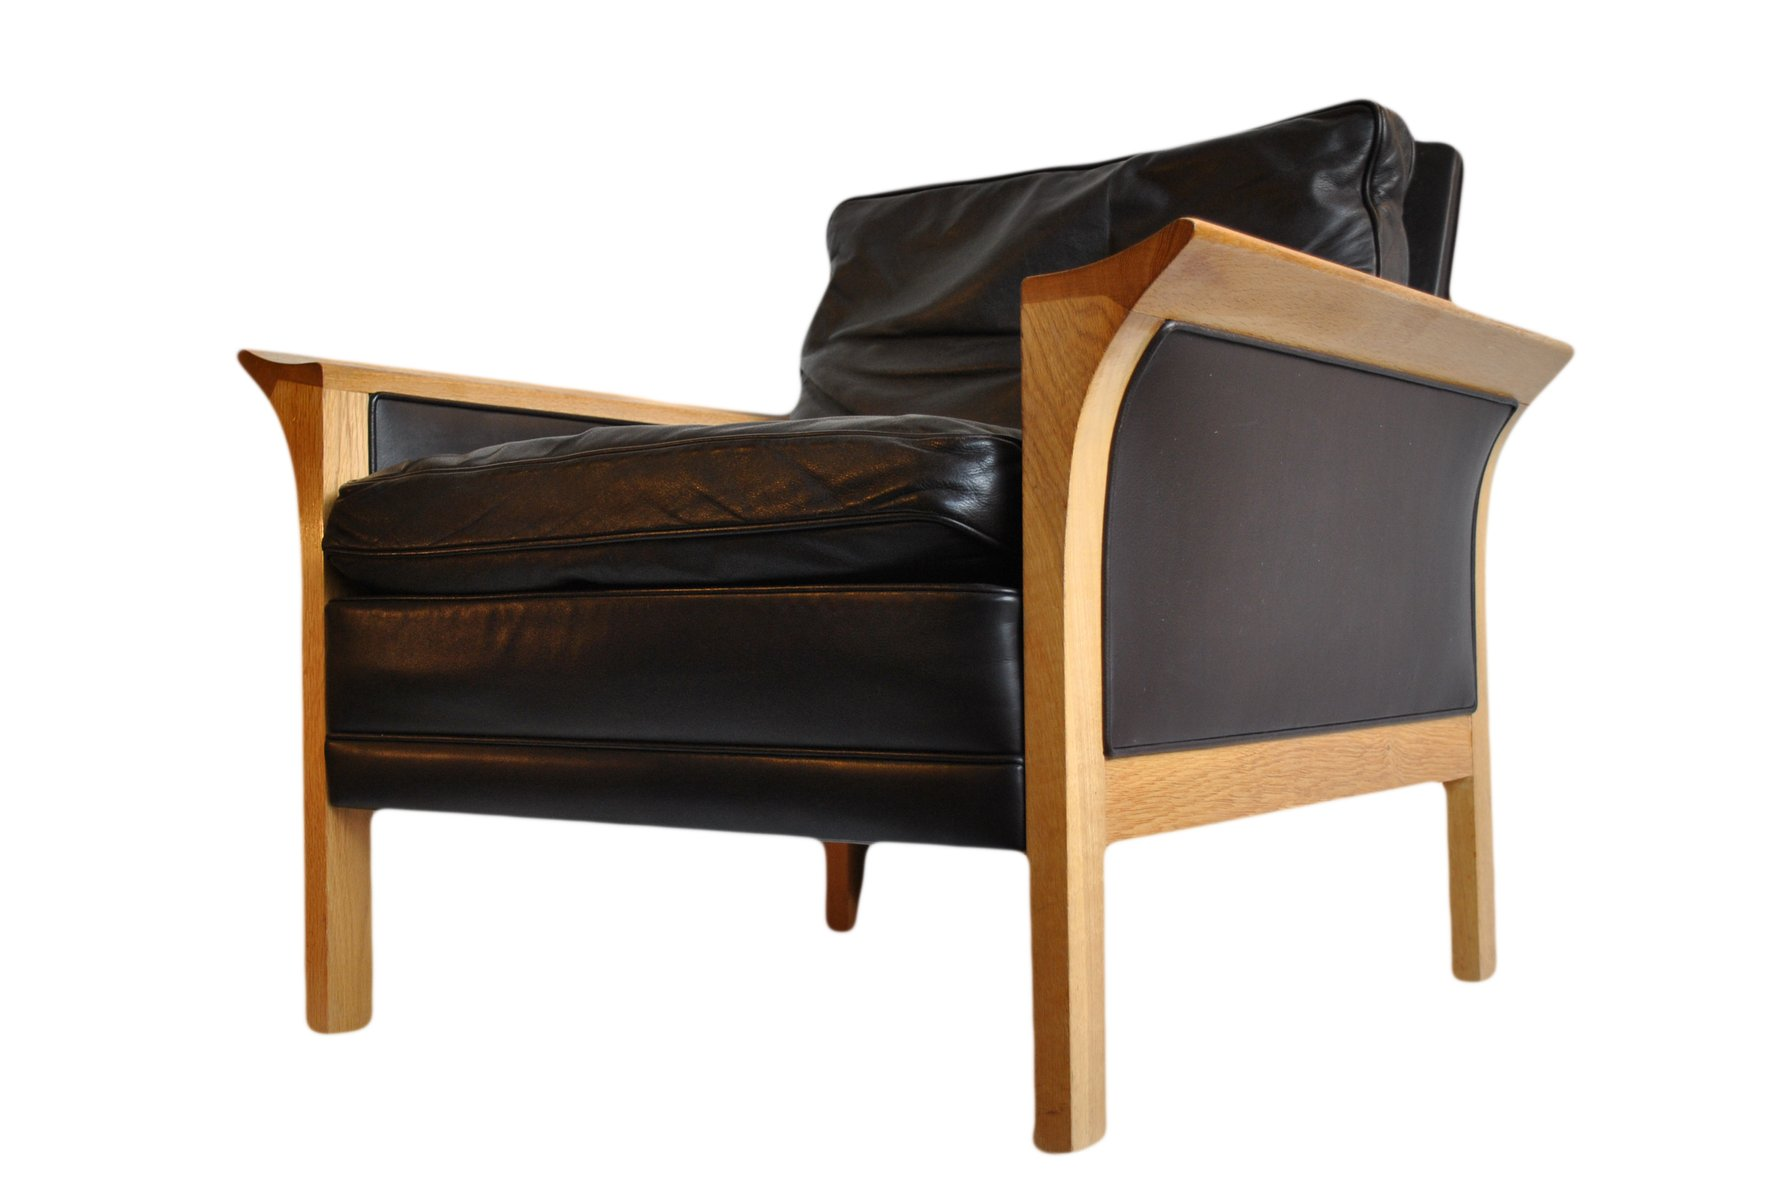 Model 400 Oak And Leather Lounge Chair By Hans Olsen For CS Mobelfabrik,  1966